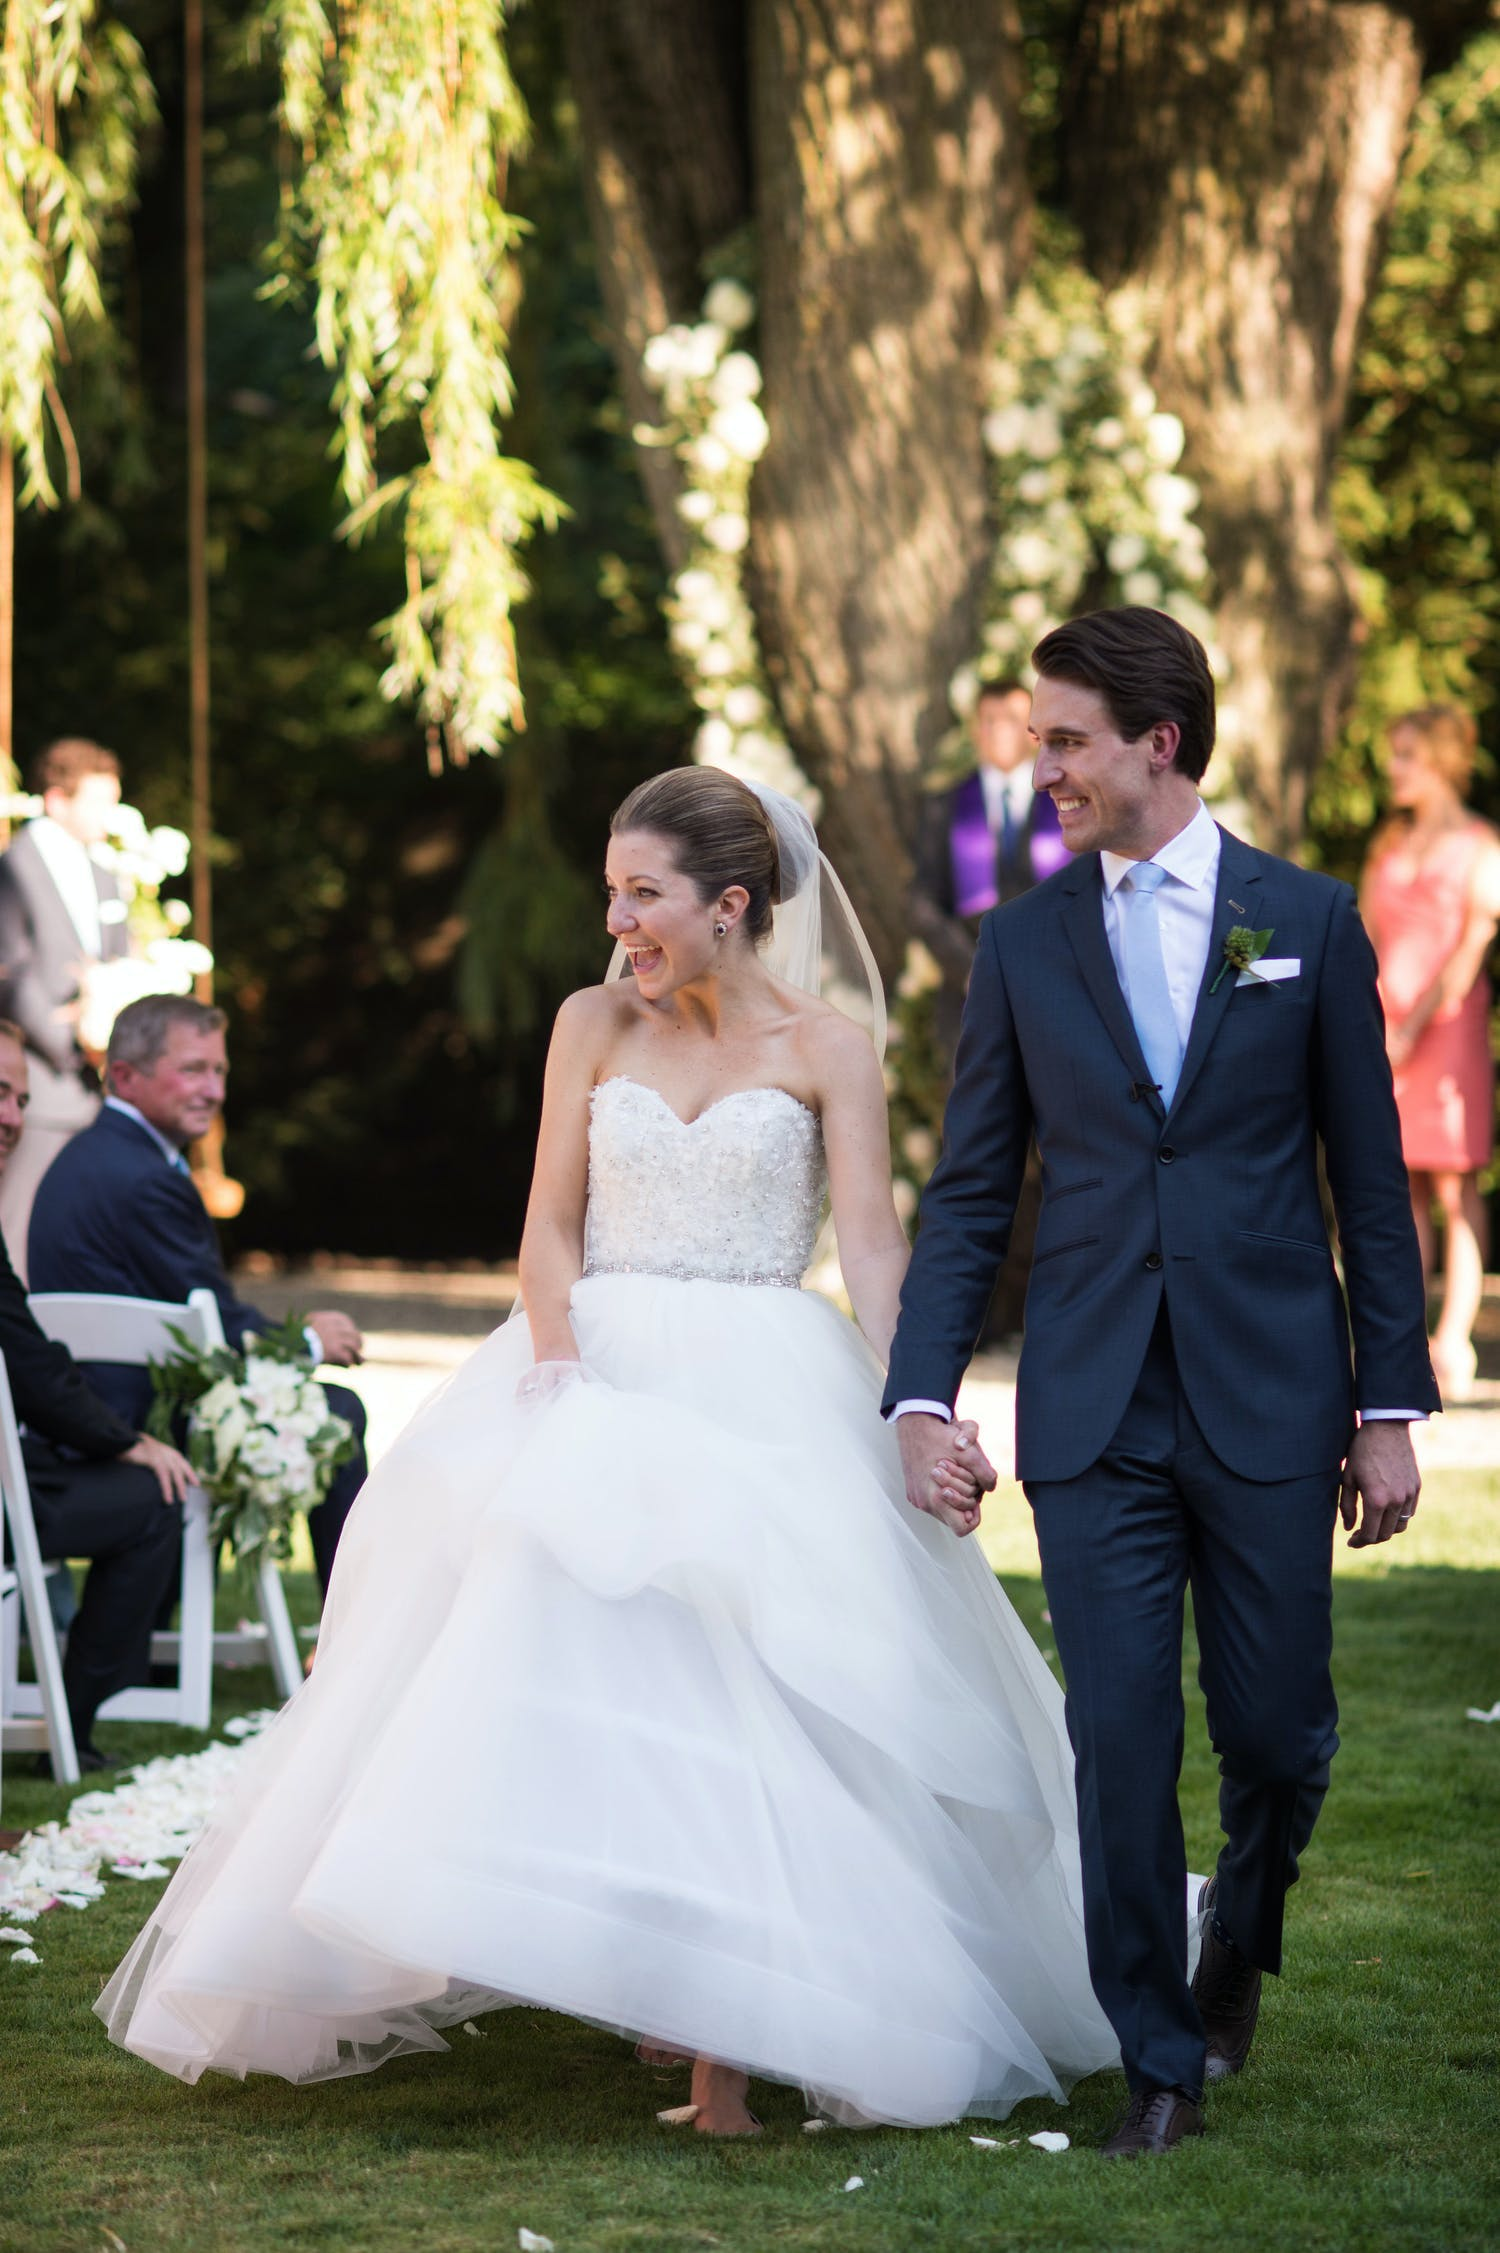 Wedding Recessional at Private Home in Chicago Suburbs Planned by SQN Events | PartySlate